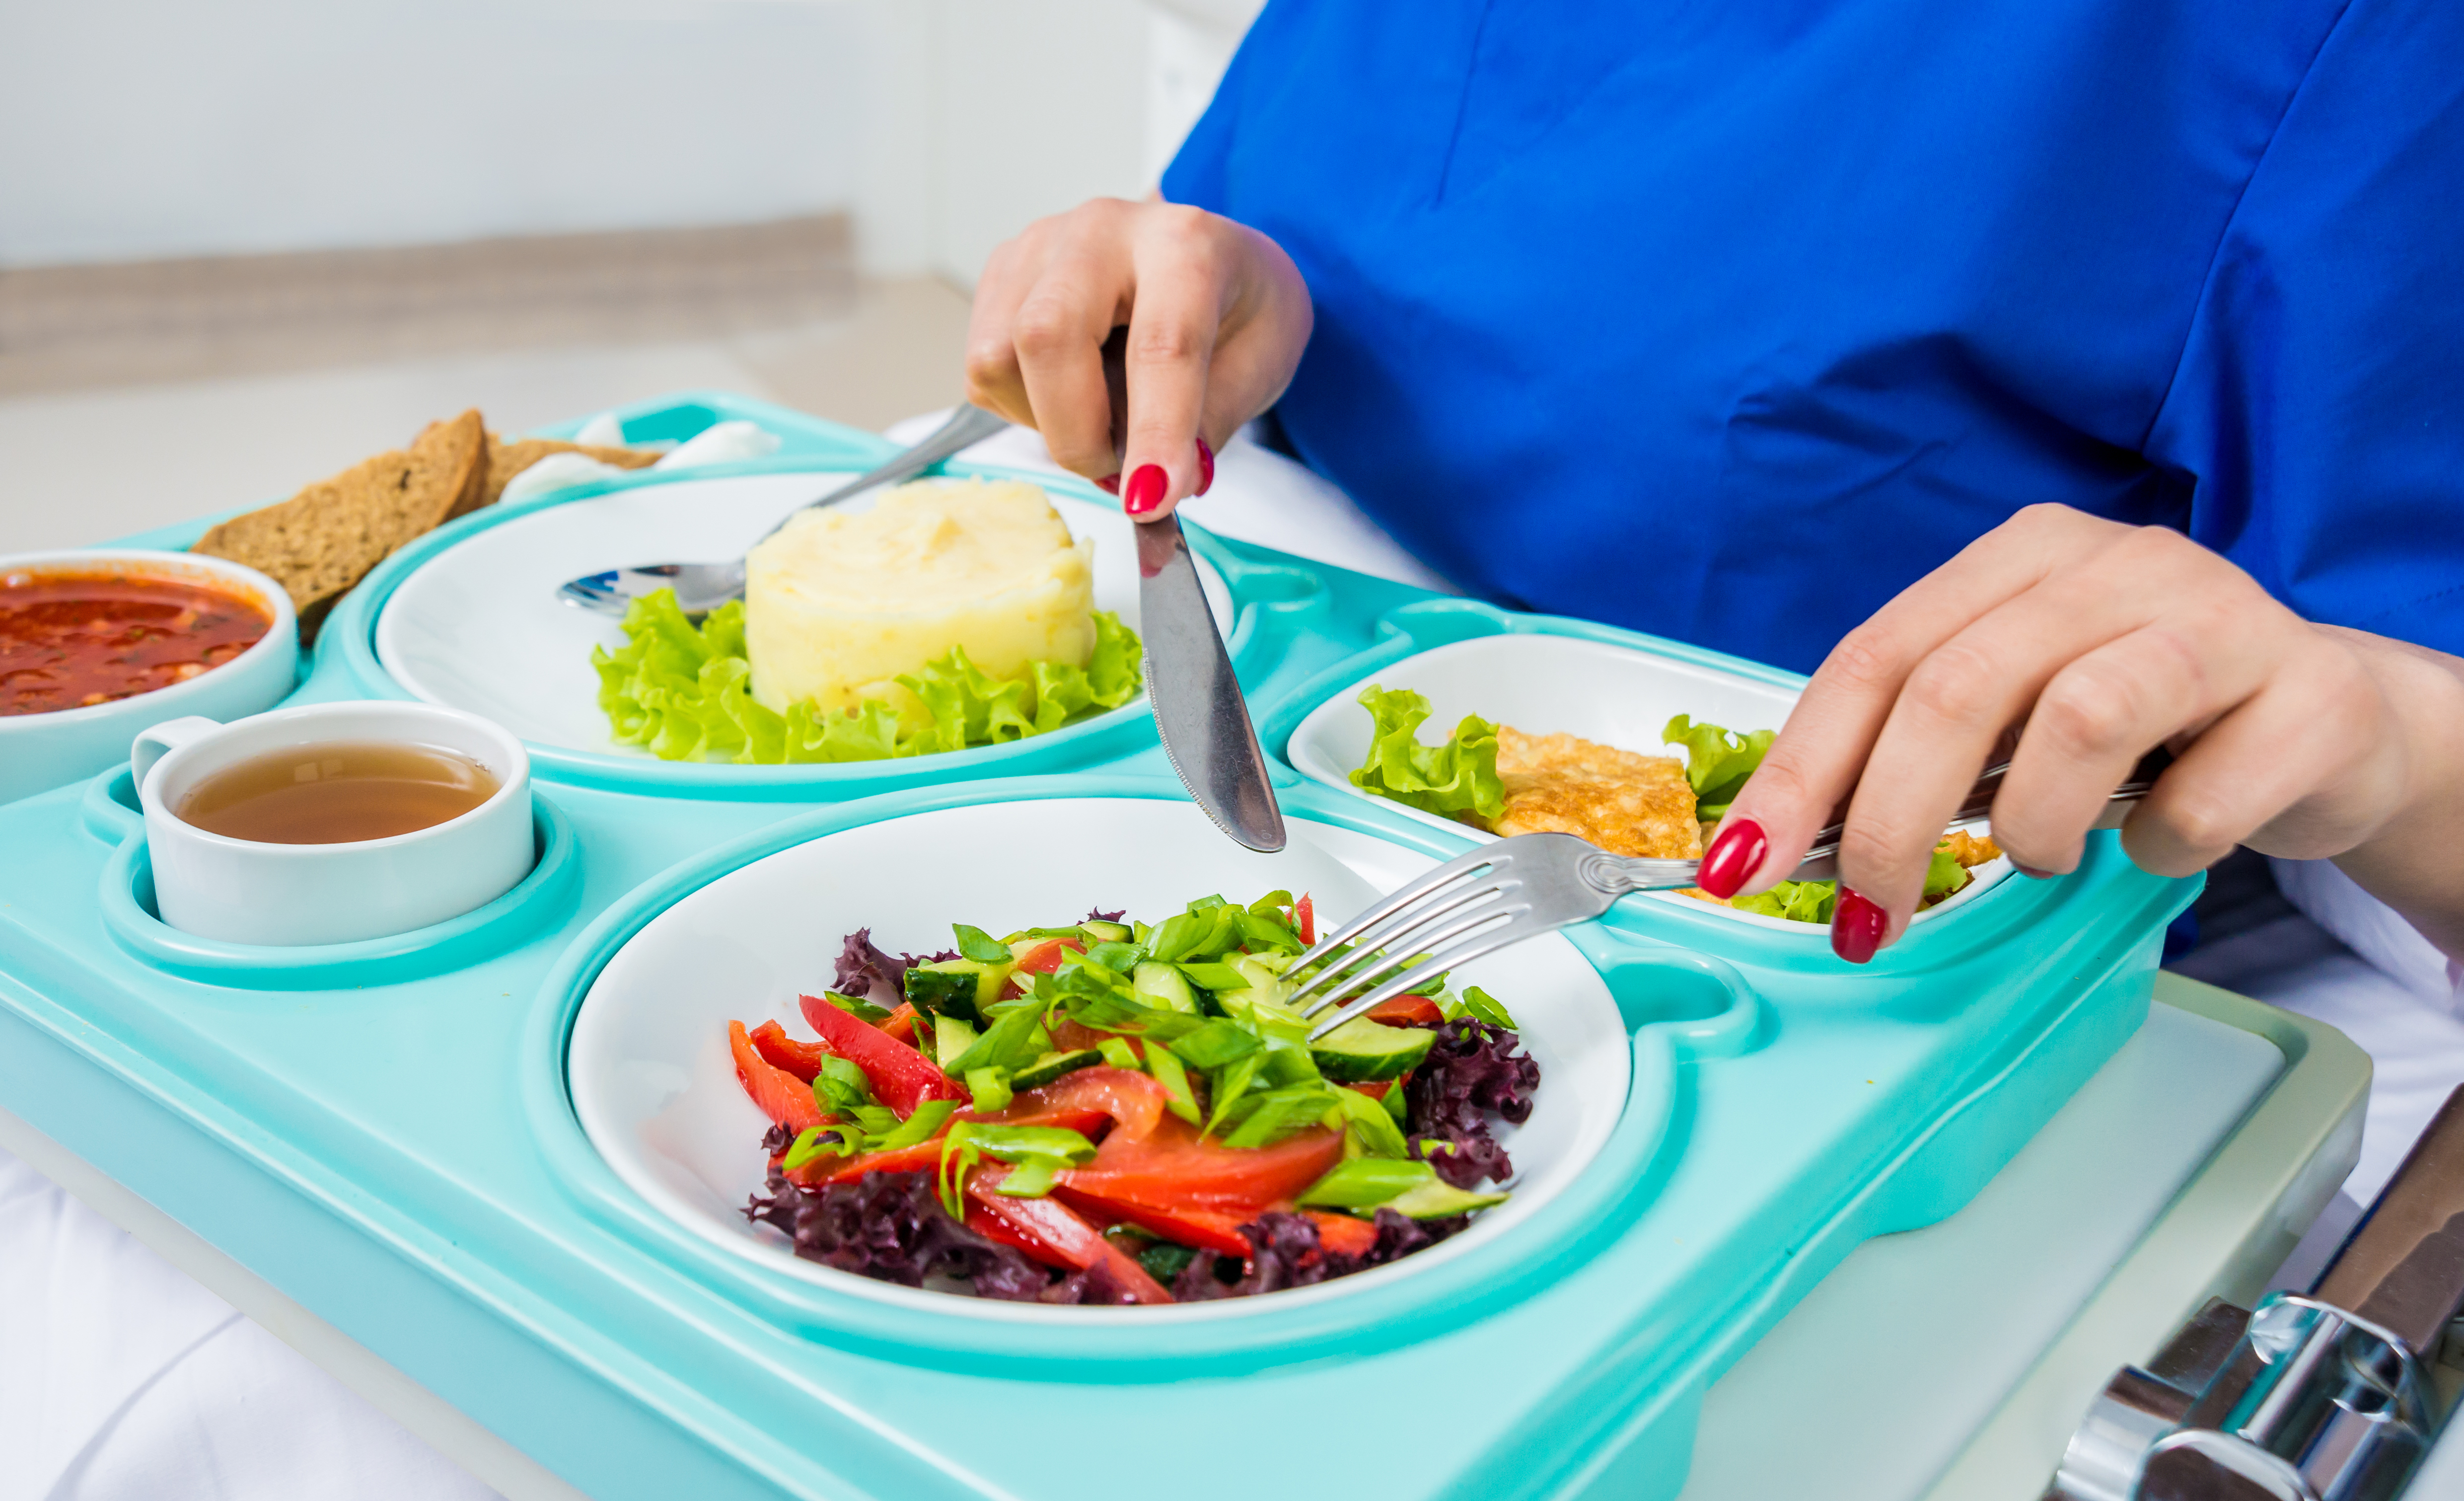 Hospital patient eating food